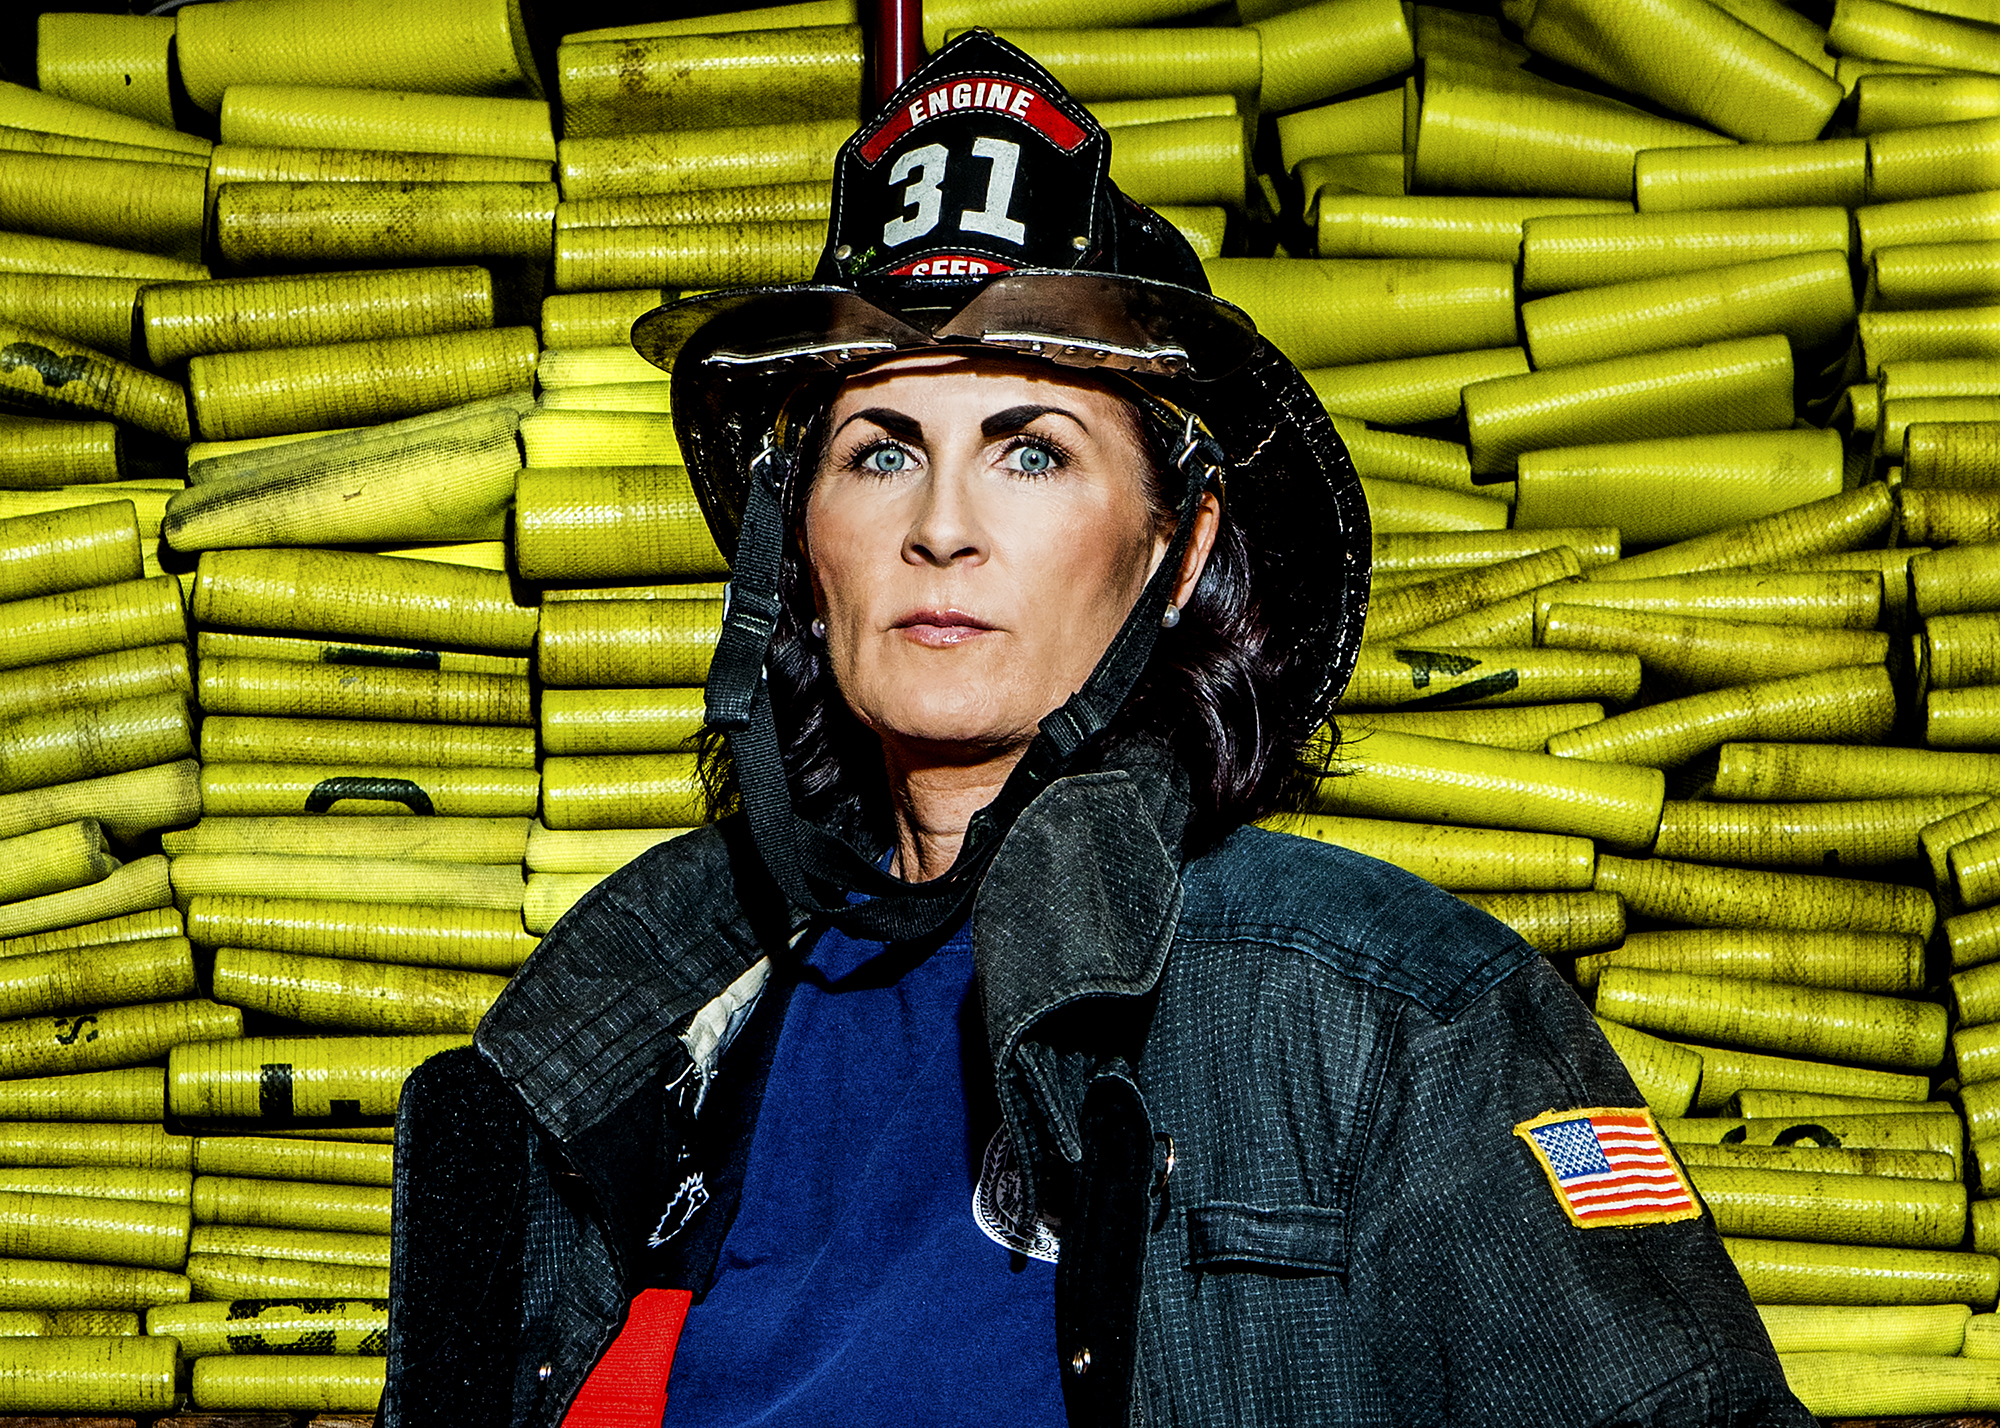 Marcella McCormack - Firefighter, 18 years.